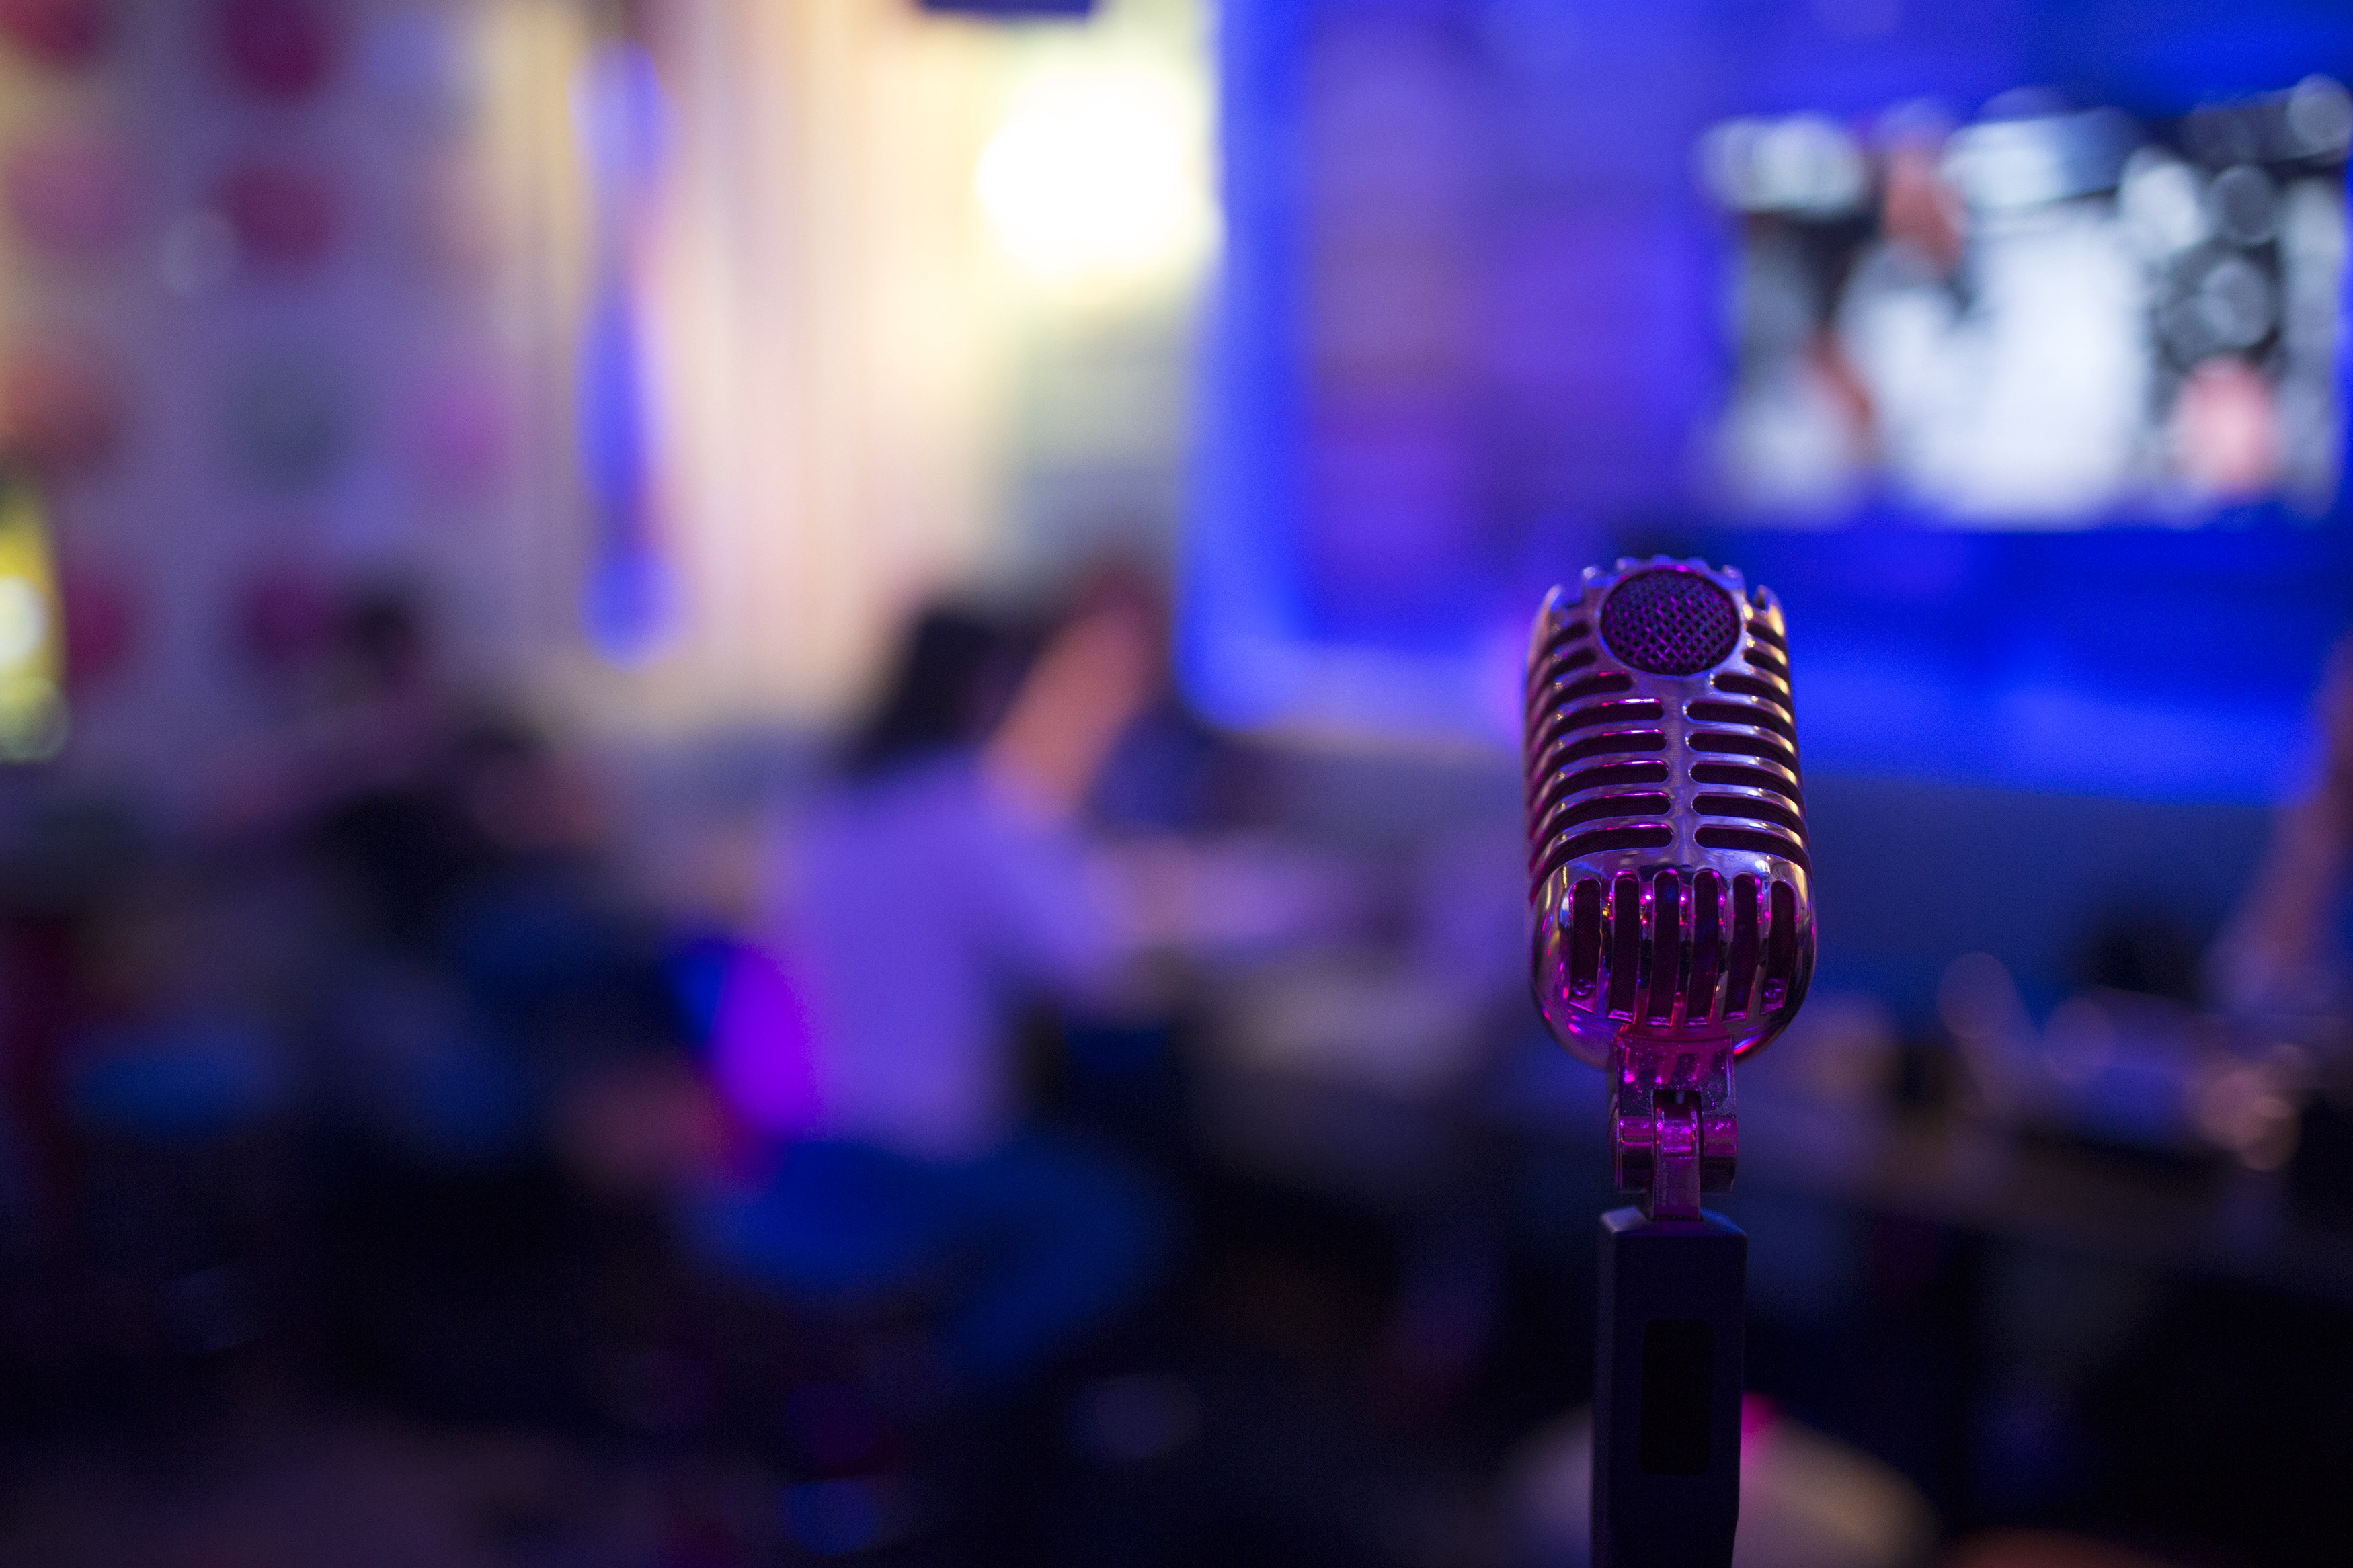 An old-fashion microphone is in the foreground, behind is an office bathed in blue light.